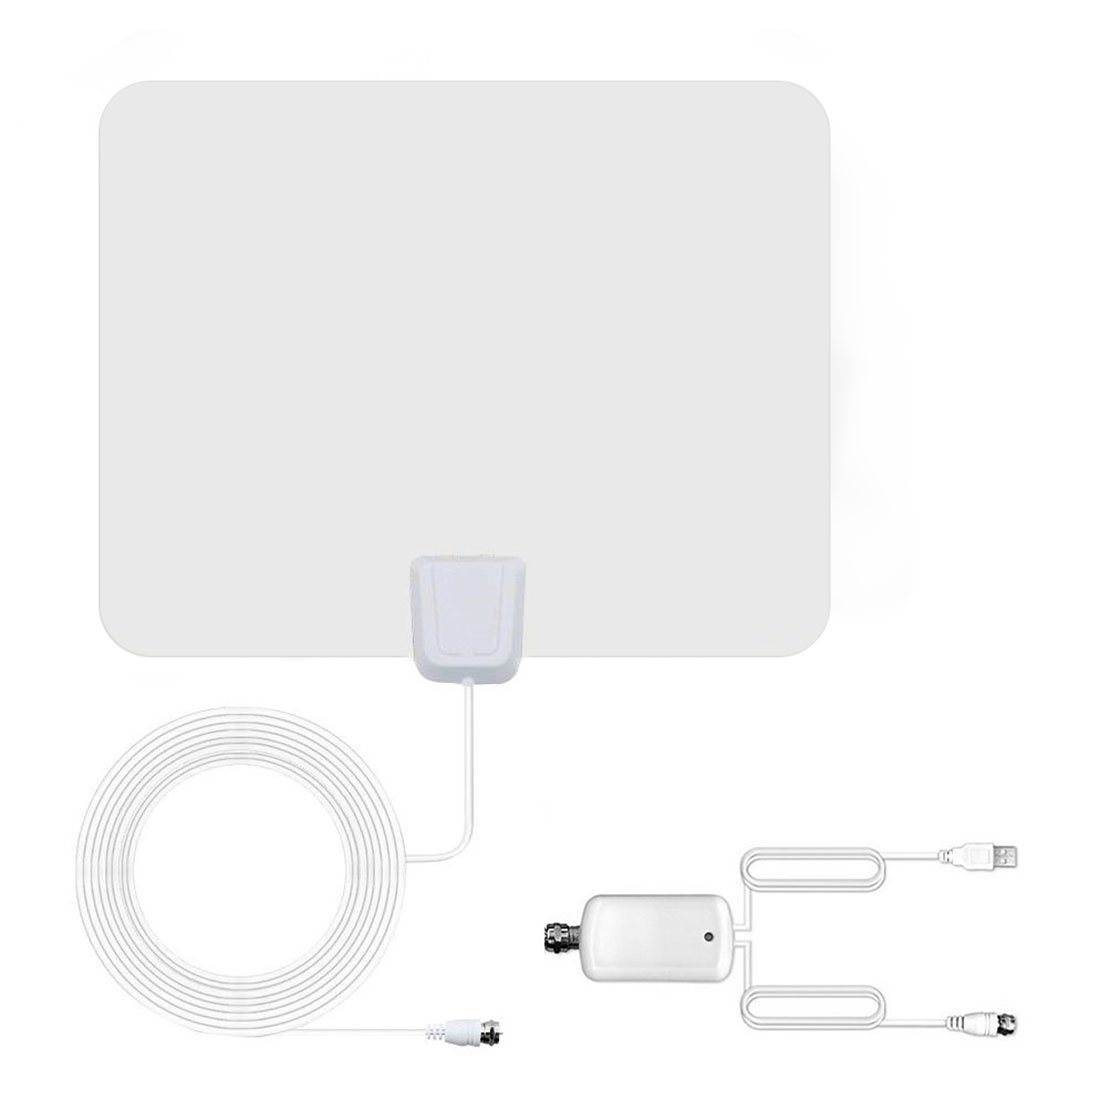 TV Antenna Upgraded 2018 Version Over 60 Miles Long Range Digital HDTV Antenna with Detachable Amplifier Signal Booster Indoor/Outdoor 16FT Coaxial Cable Support Most TV Channel